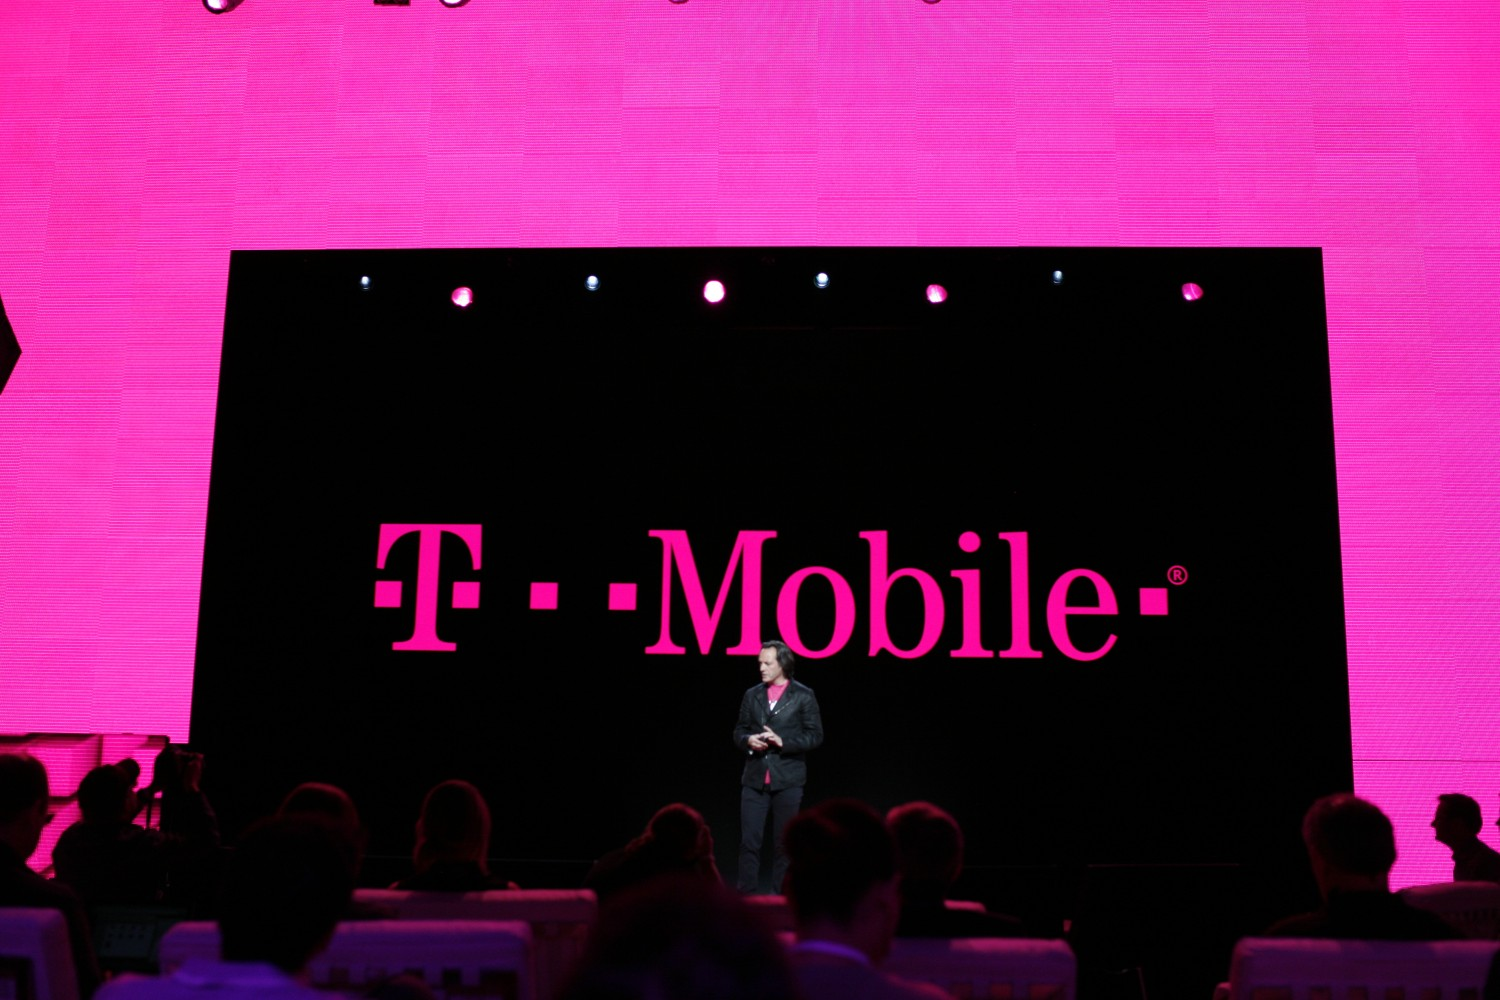 FTC Says T-Mobile Overcharged Customers Millions